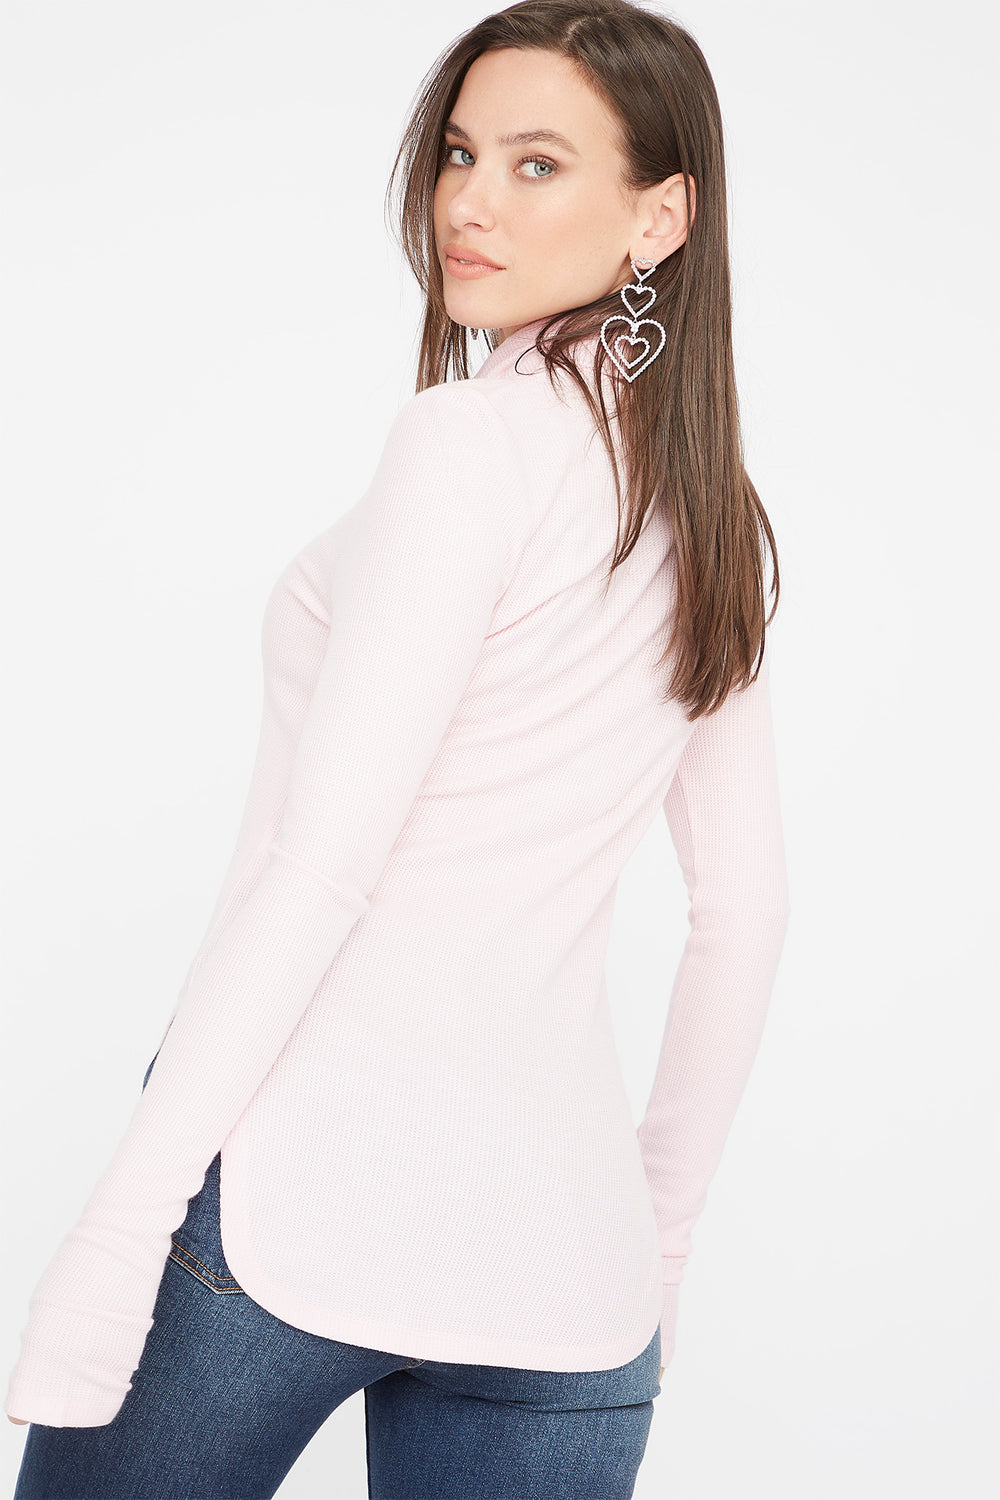 Thermal Turtleneck Long Sleeve Tunic Top Light Pink